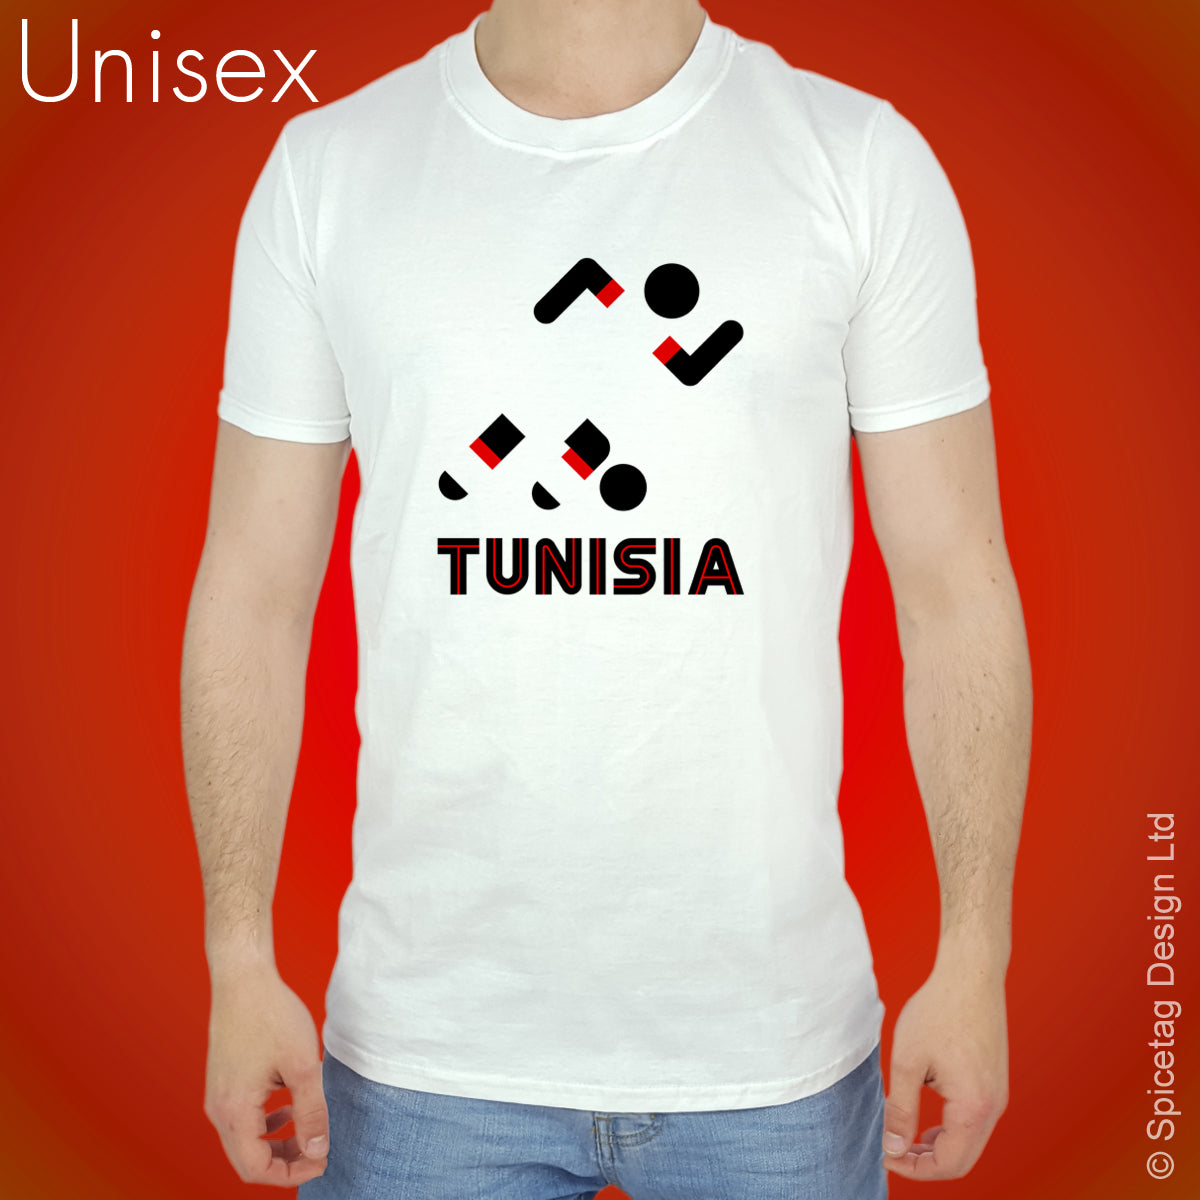 Tunisia Retro Football T-shirt